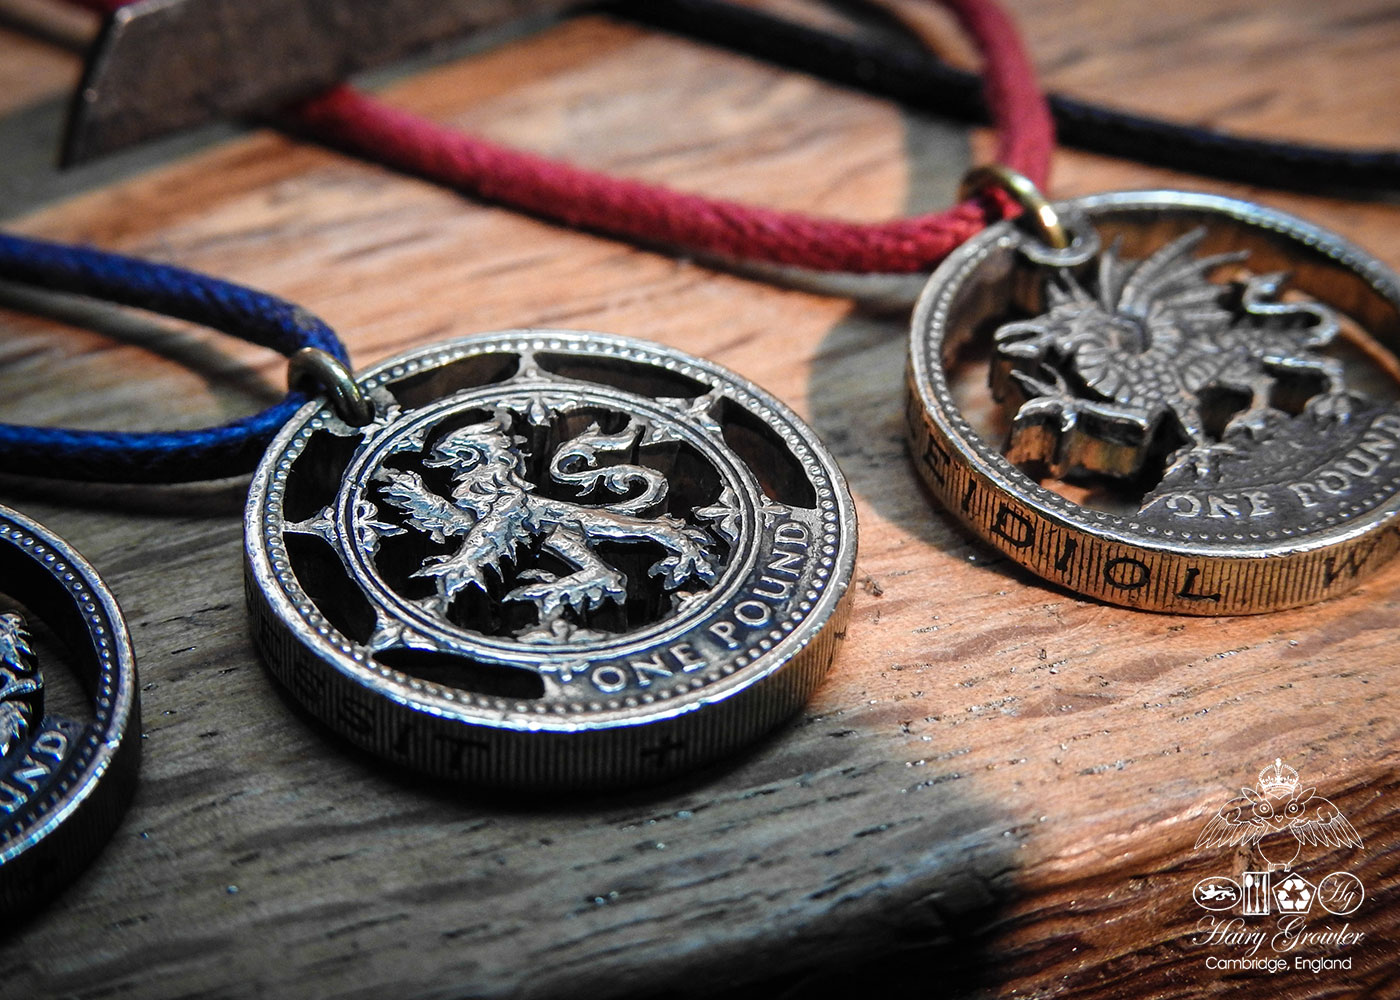 The hairy growler jewellery co the random collection of recycled hand crafted and cut one pound coin pendants created from old out of circulation pound aloadofball Images